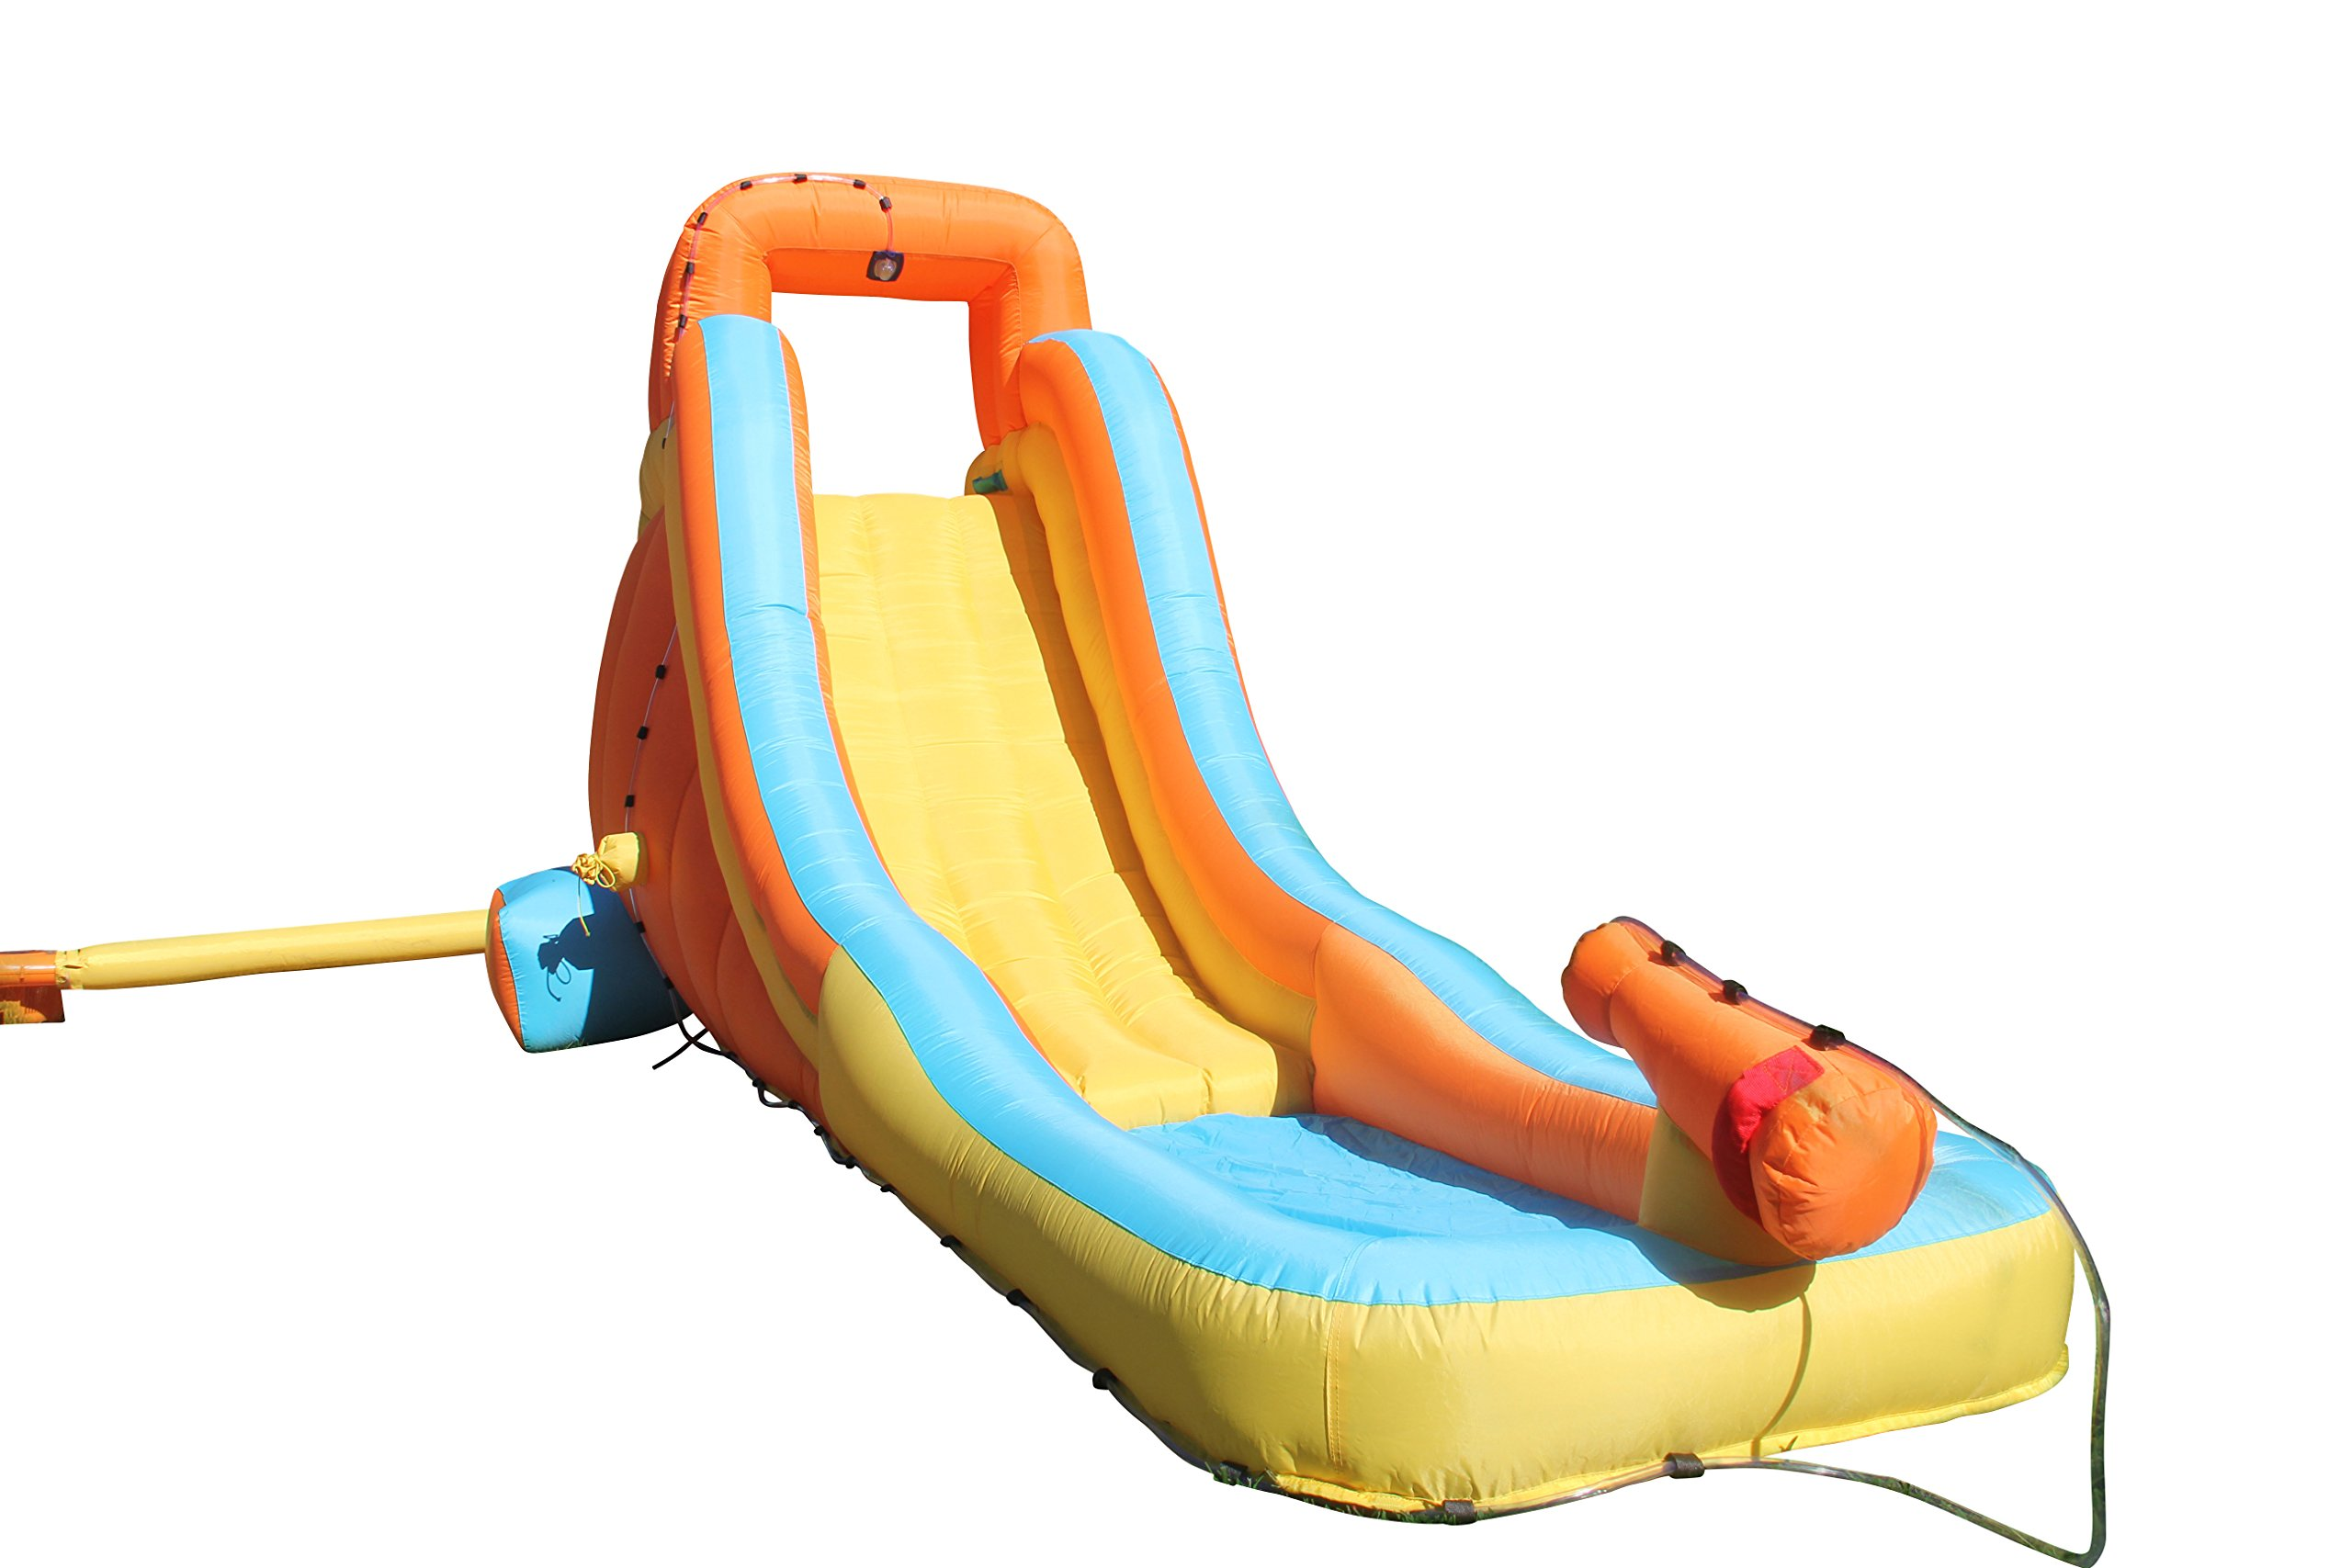 Sportspower My First Inflatable Water Slide - Heavy-Duty Outdoor Slide with Water Cannon and Splash Pool - Air Blower Included by Sportspower